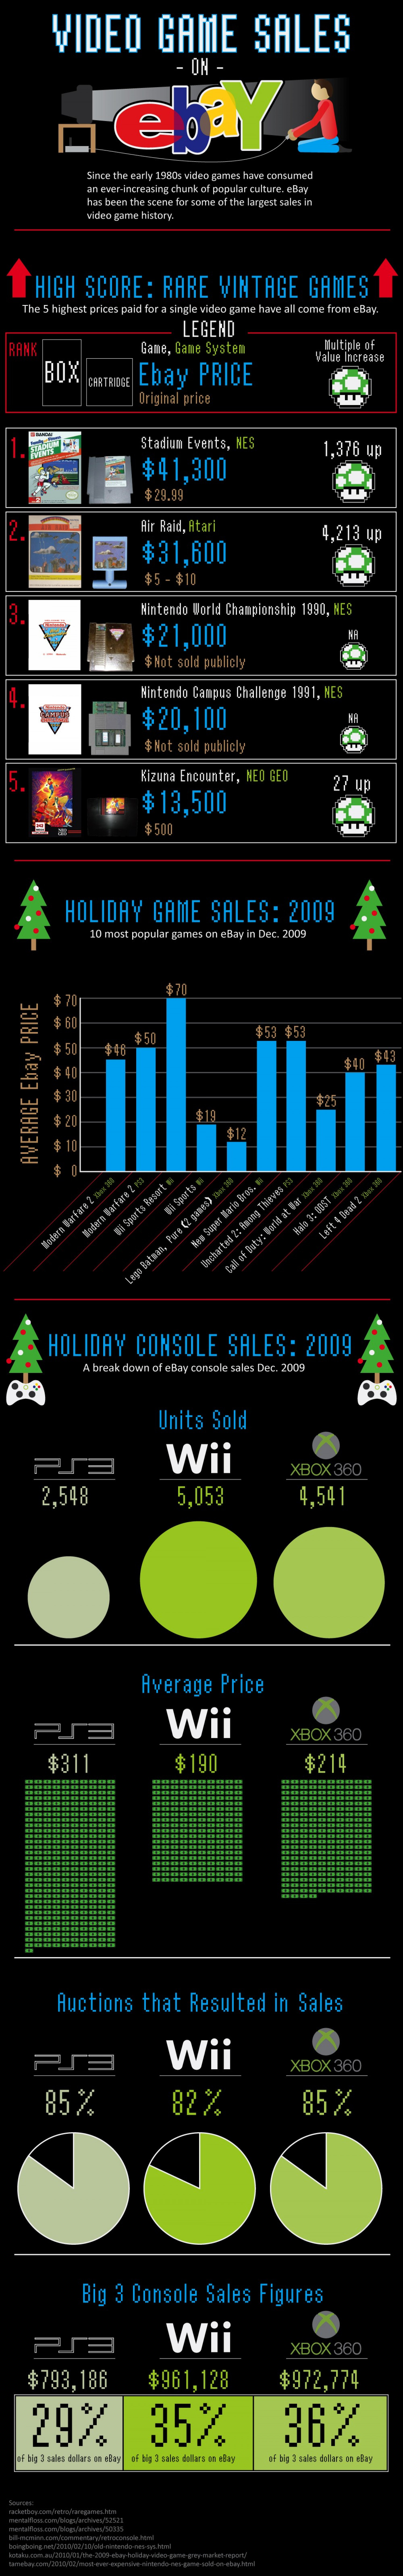 Video Game Sales on eBay Infographic